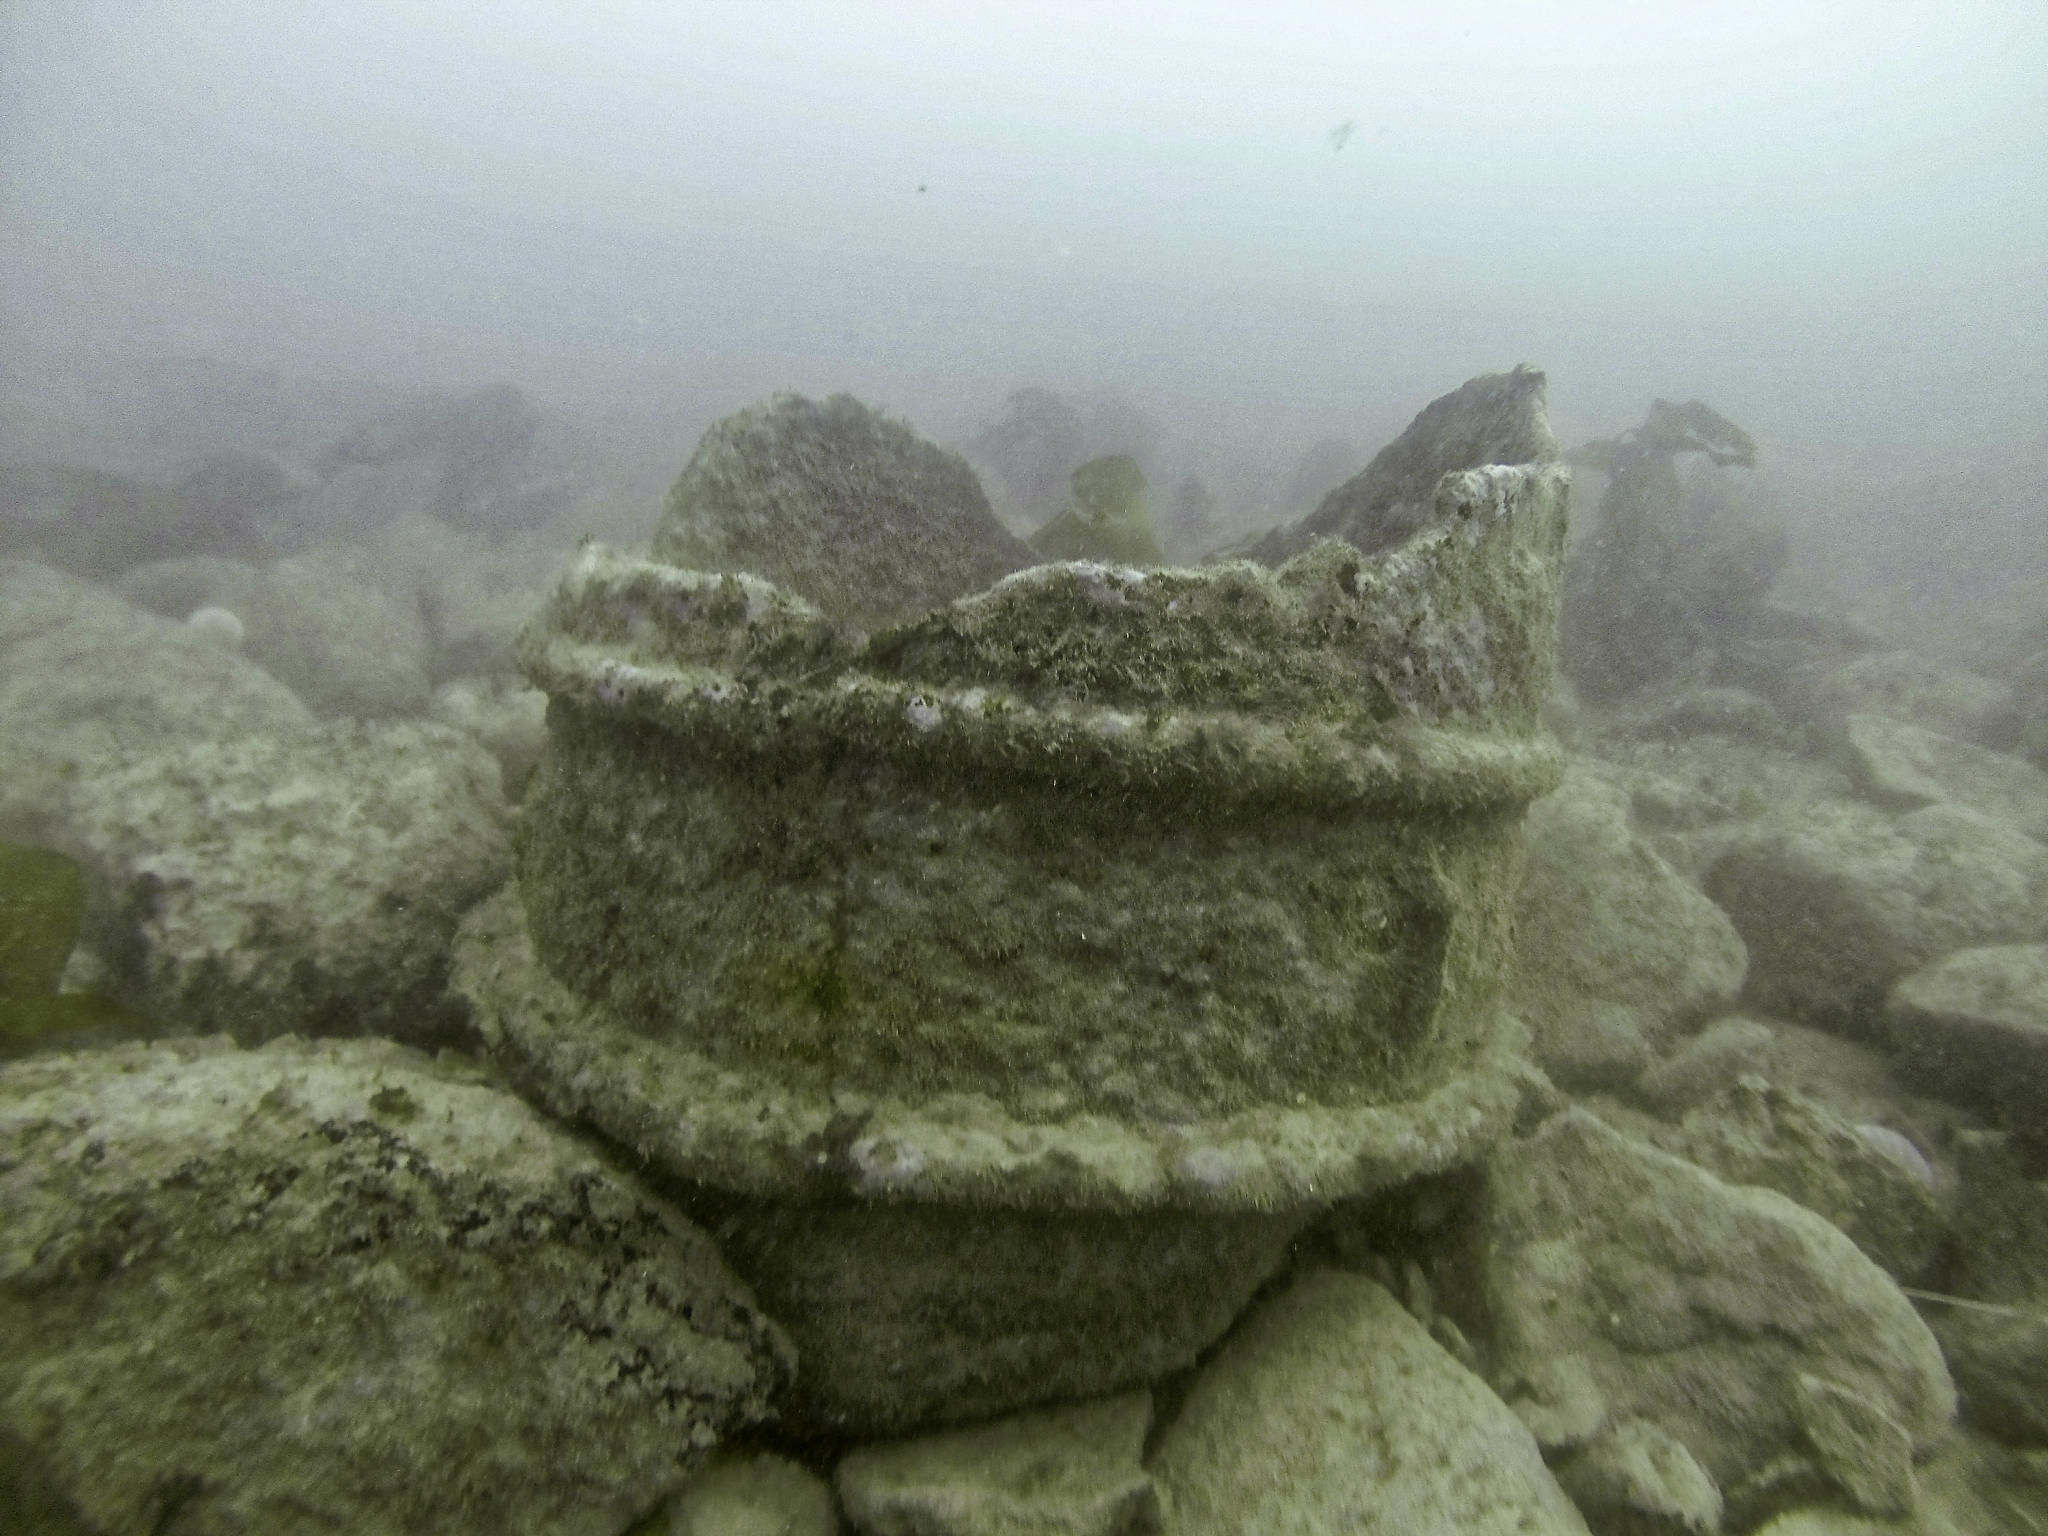 Photo of one of the cylinder fragments underwater. Two ribs can be observed around its circumference and the top is jagged. The object is covered in a furry growth of algae.